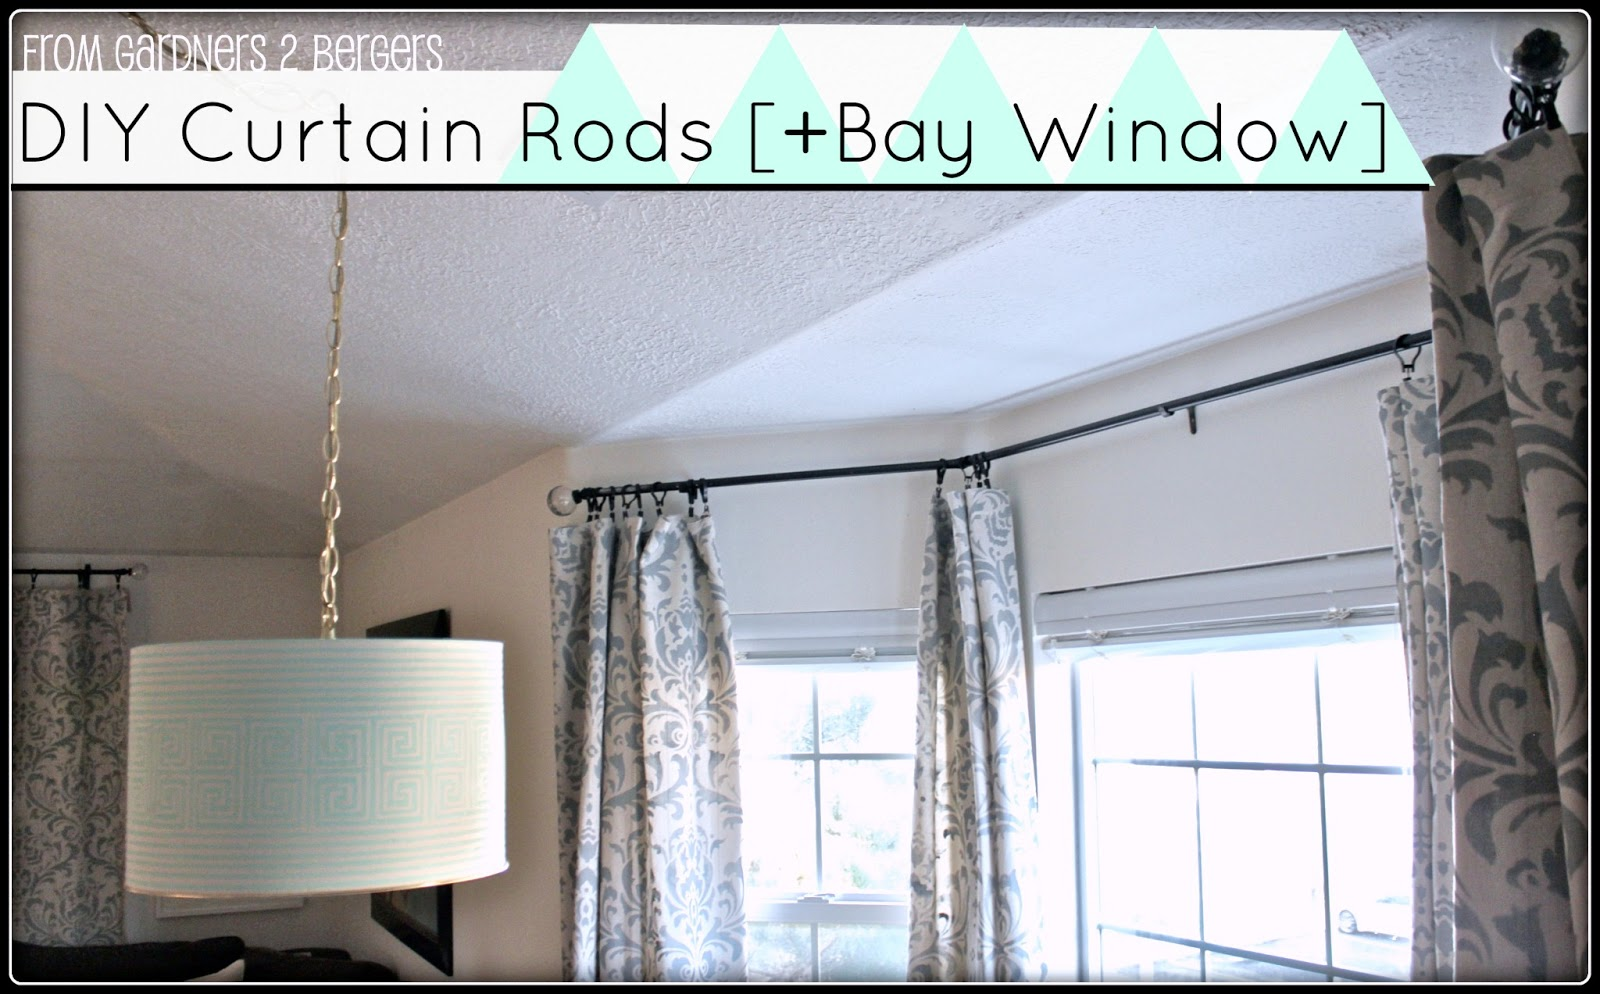 DIY+Curtains-Rods-And-bay-window-tutorial